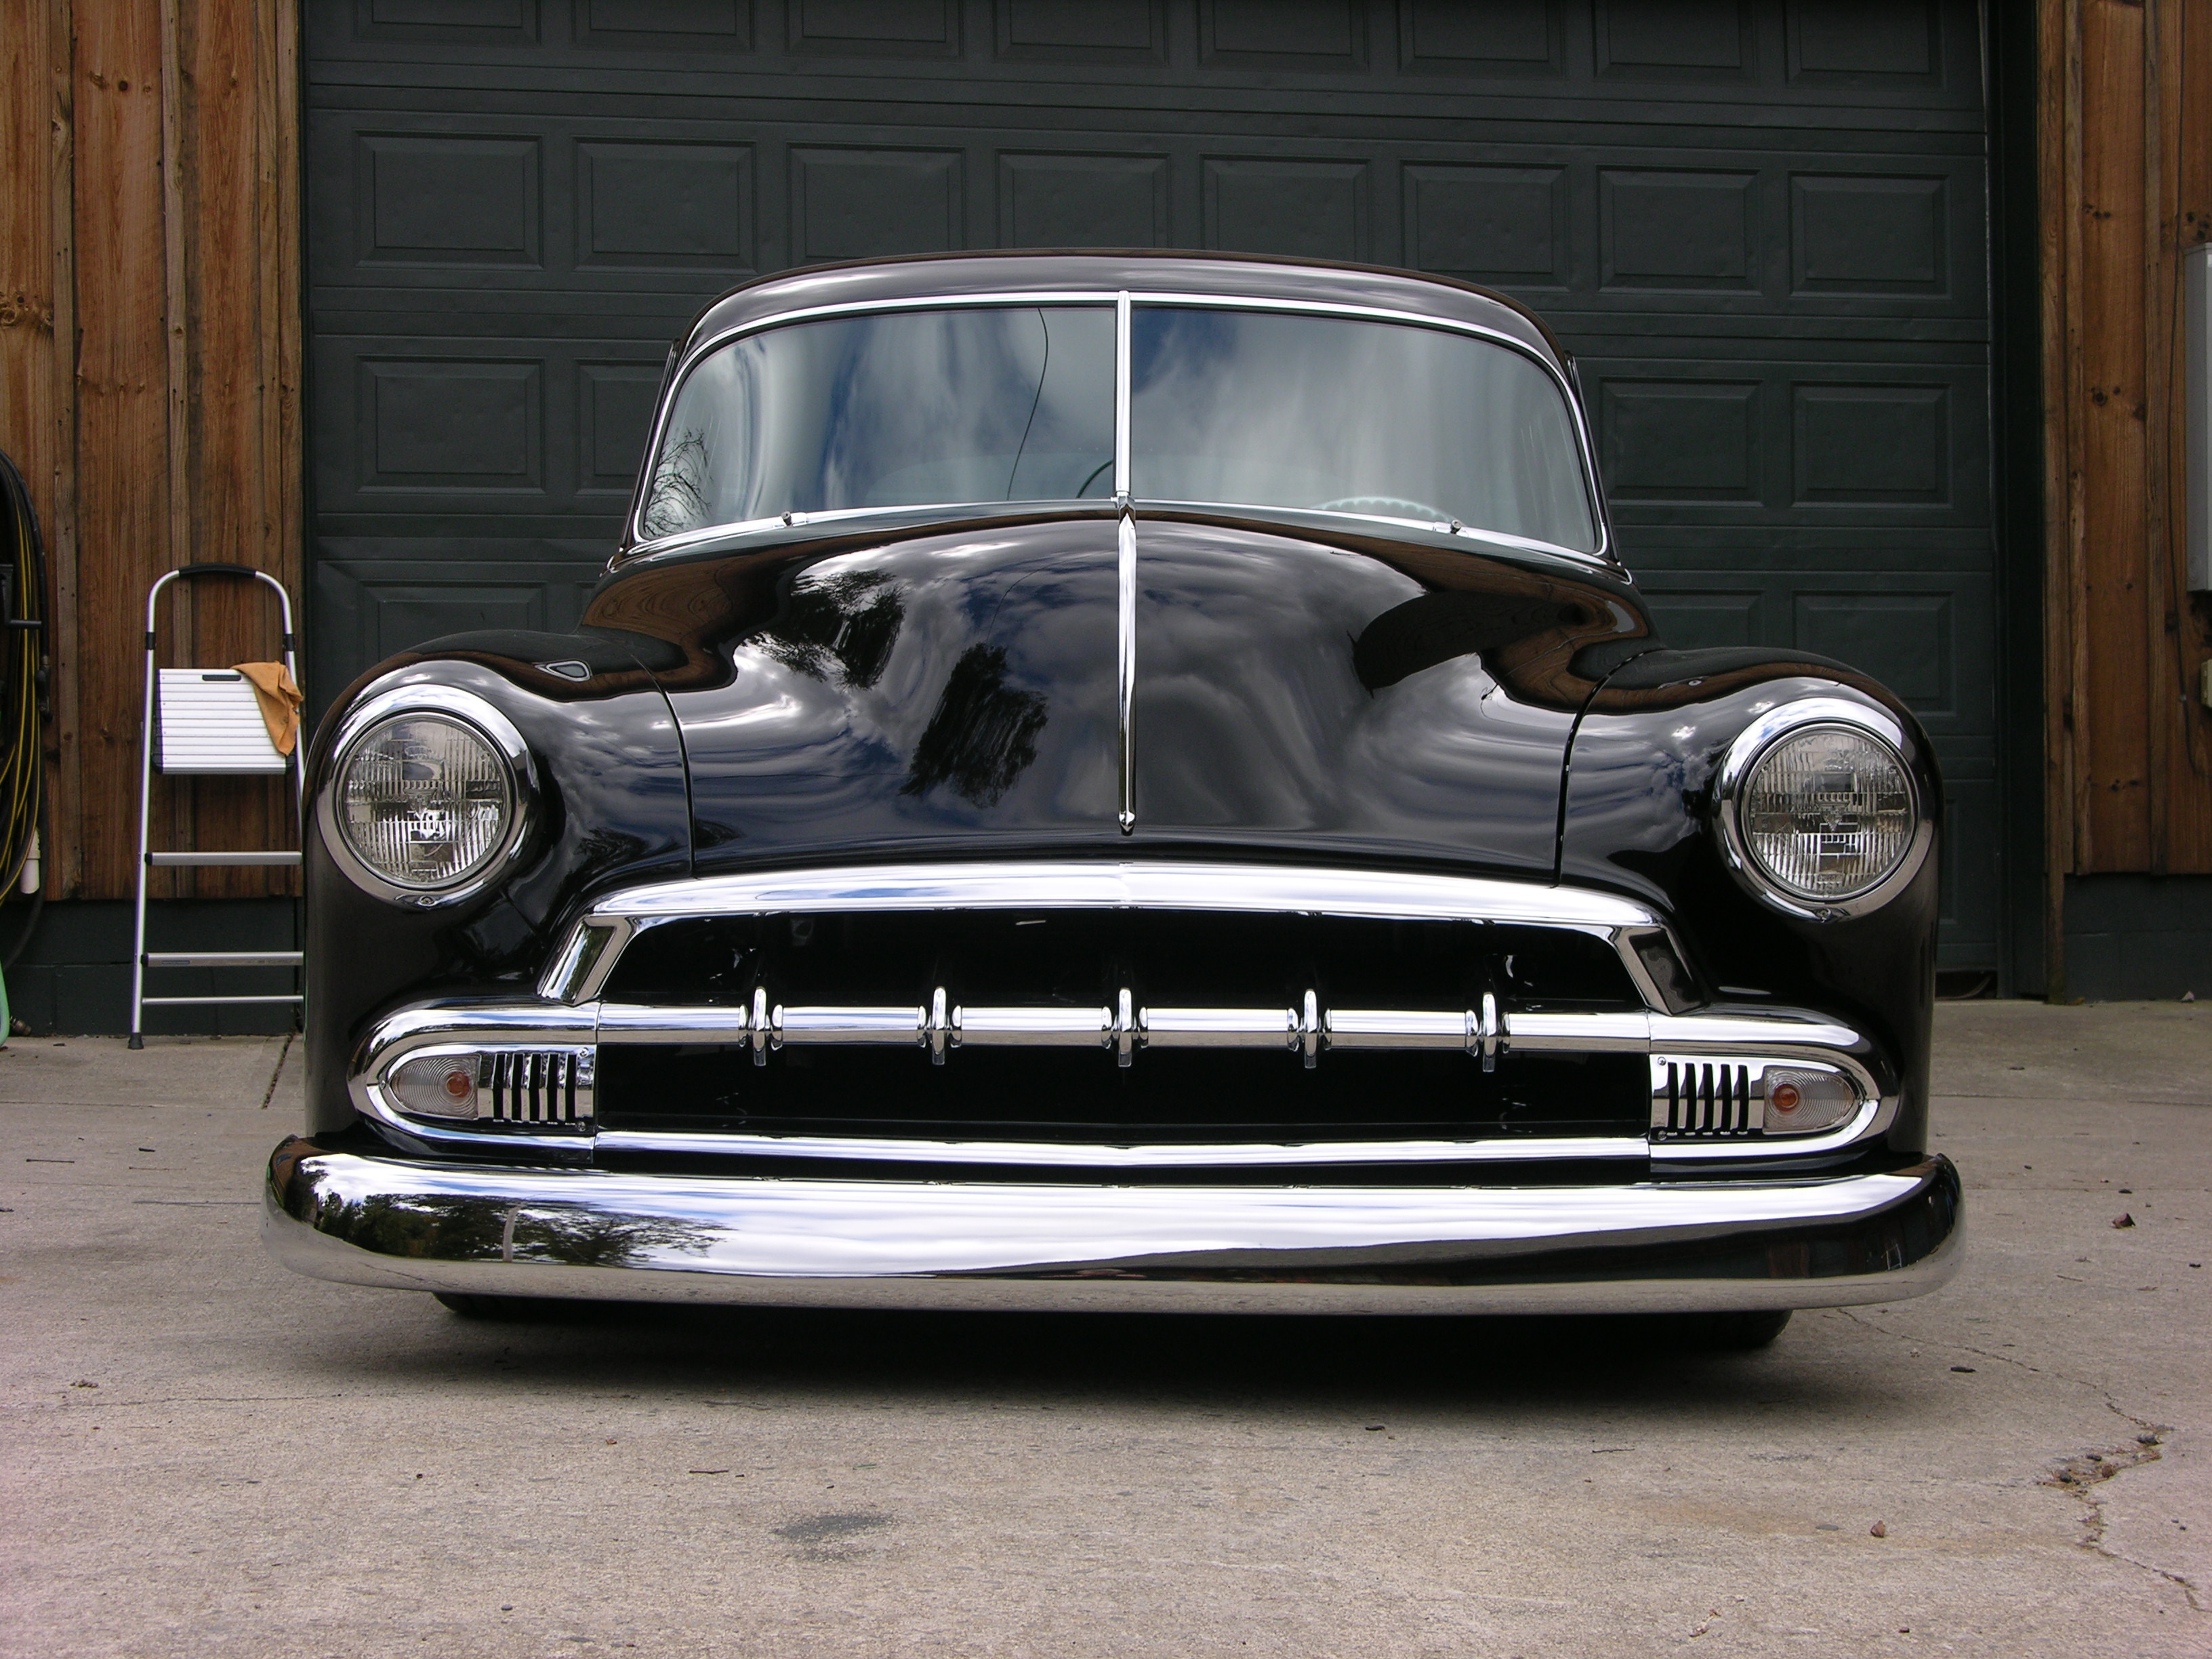 Chevrolet 1951 Hot Rod Ide Dimage De Voiture 1954 Chevy Chopped And Bagged Rat Alloways Shop